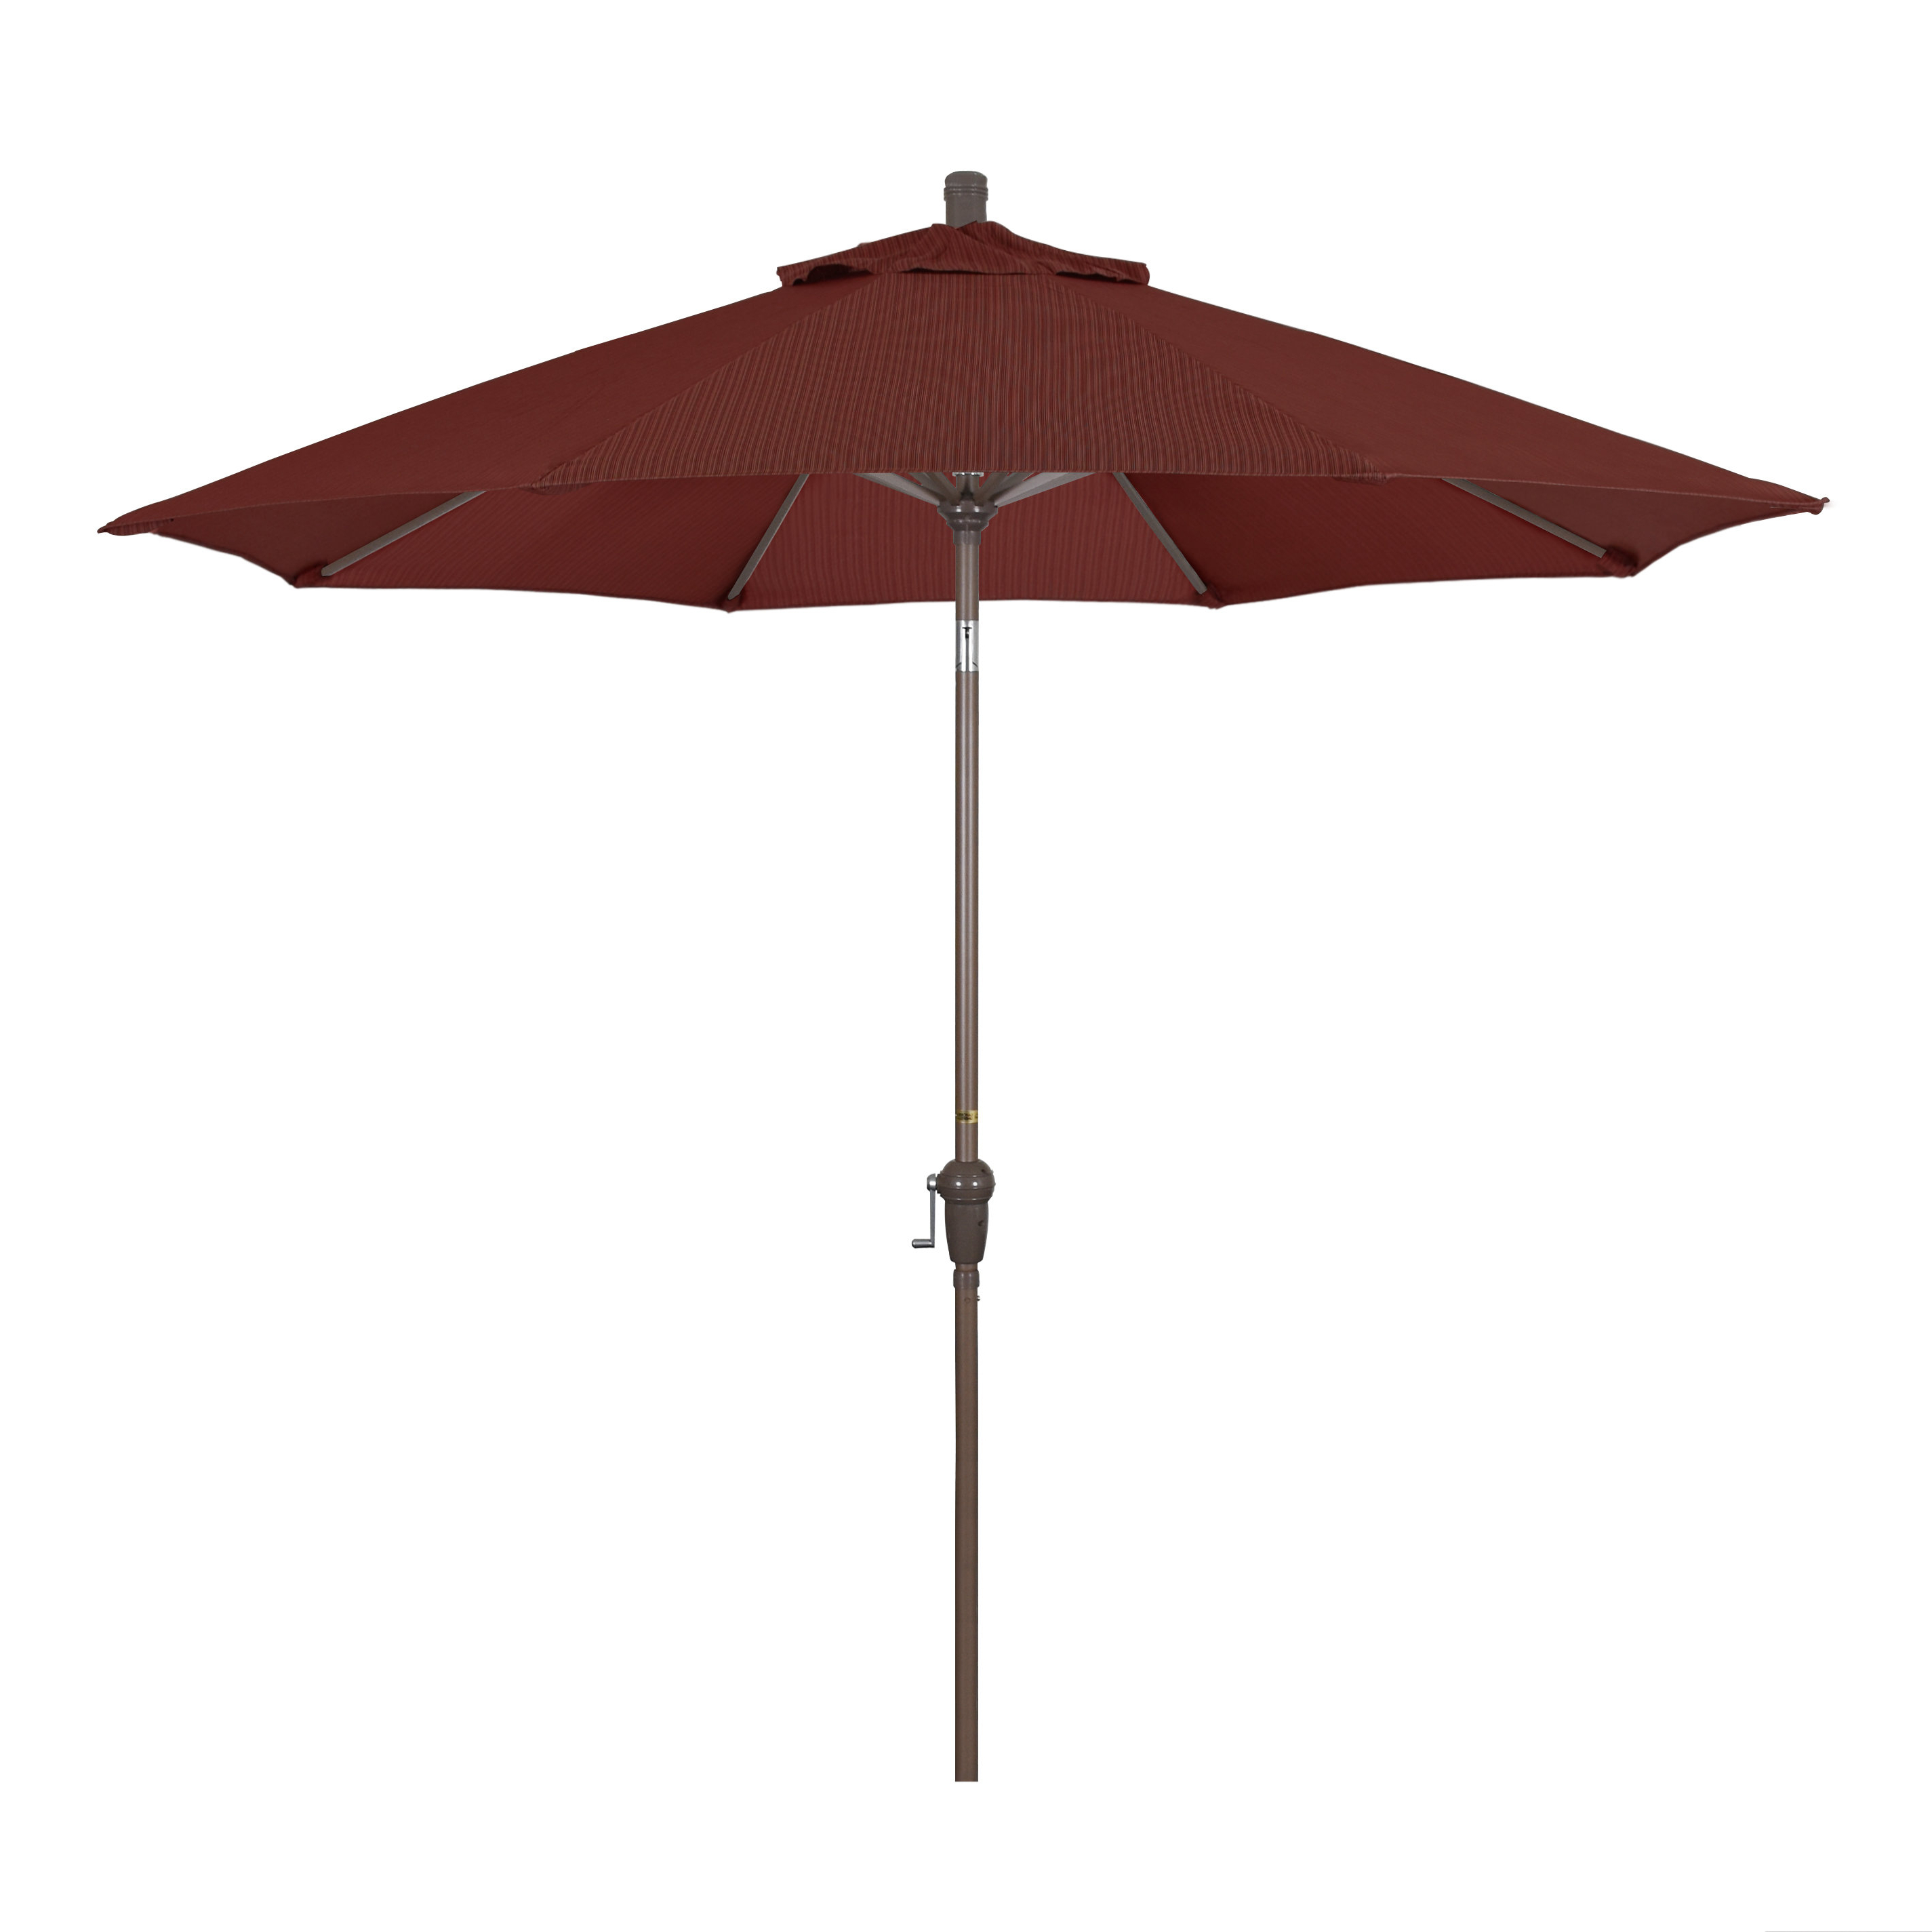 Mullaney 9' Market Umbrella Intended For Latest Mullaney Beachcrest Home Market Umbrellas (Gallery 2 of 20)